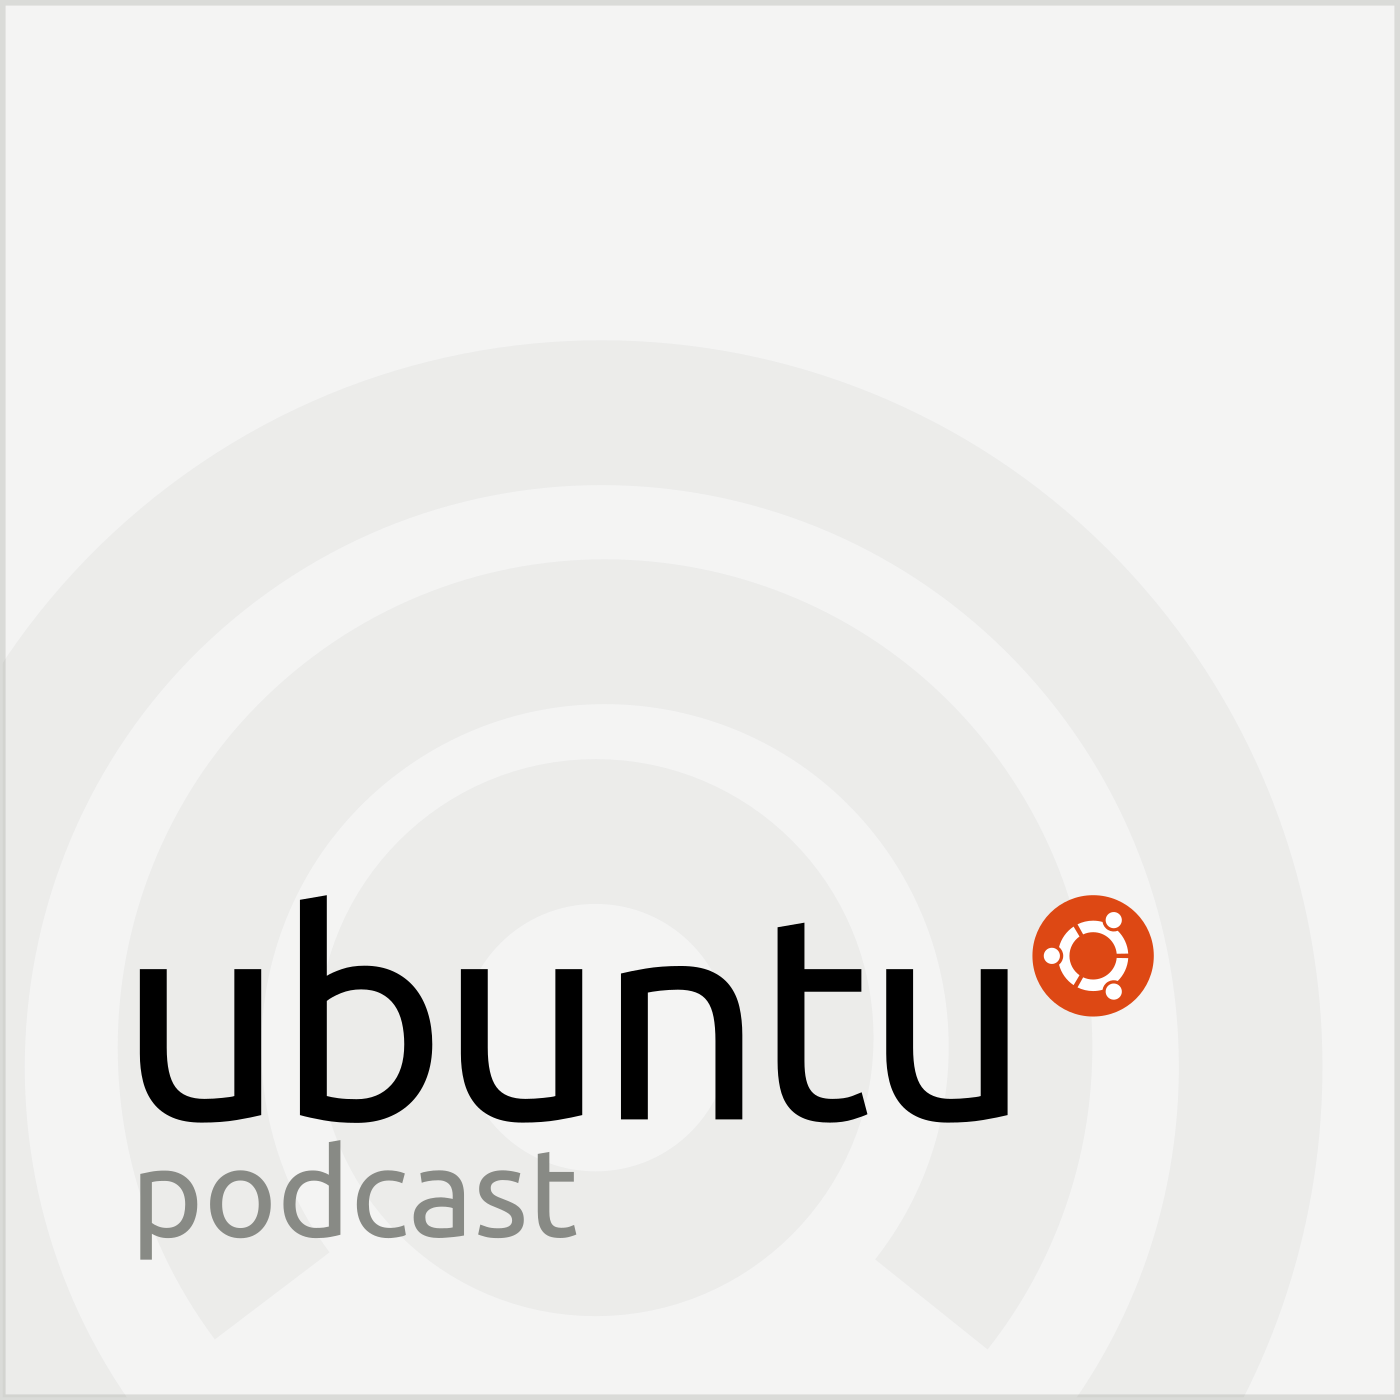 Go to Ubuntu Podcast's profile